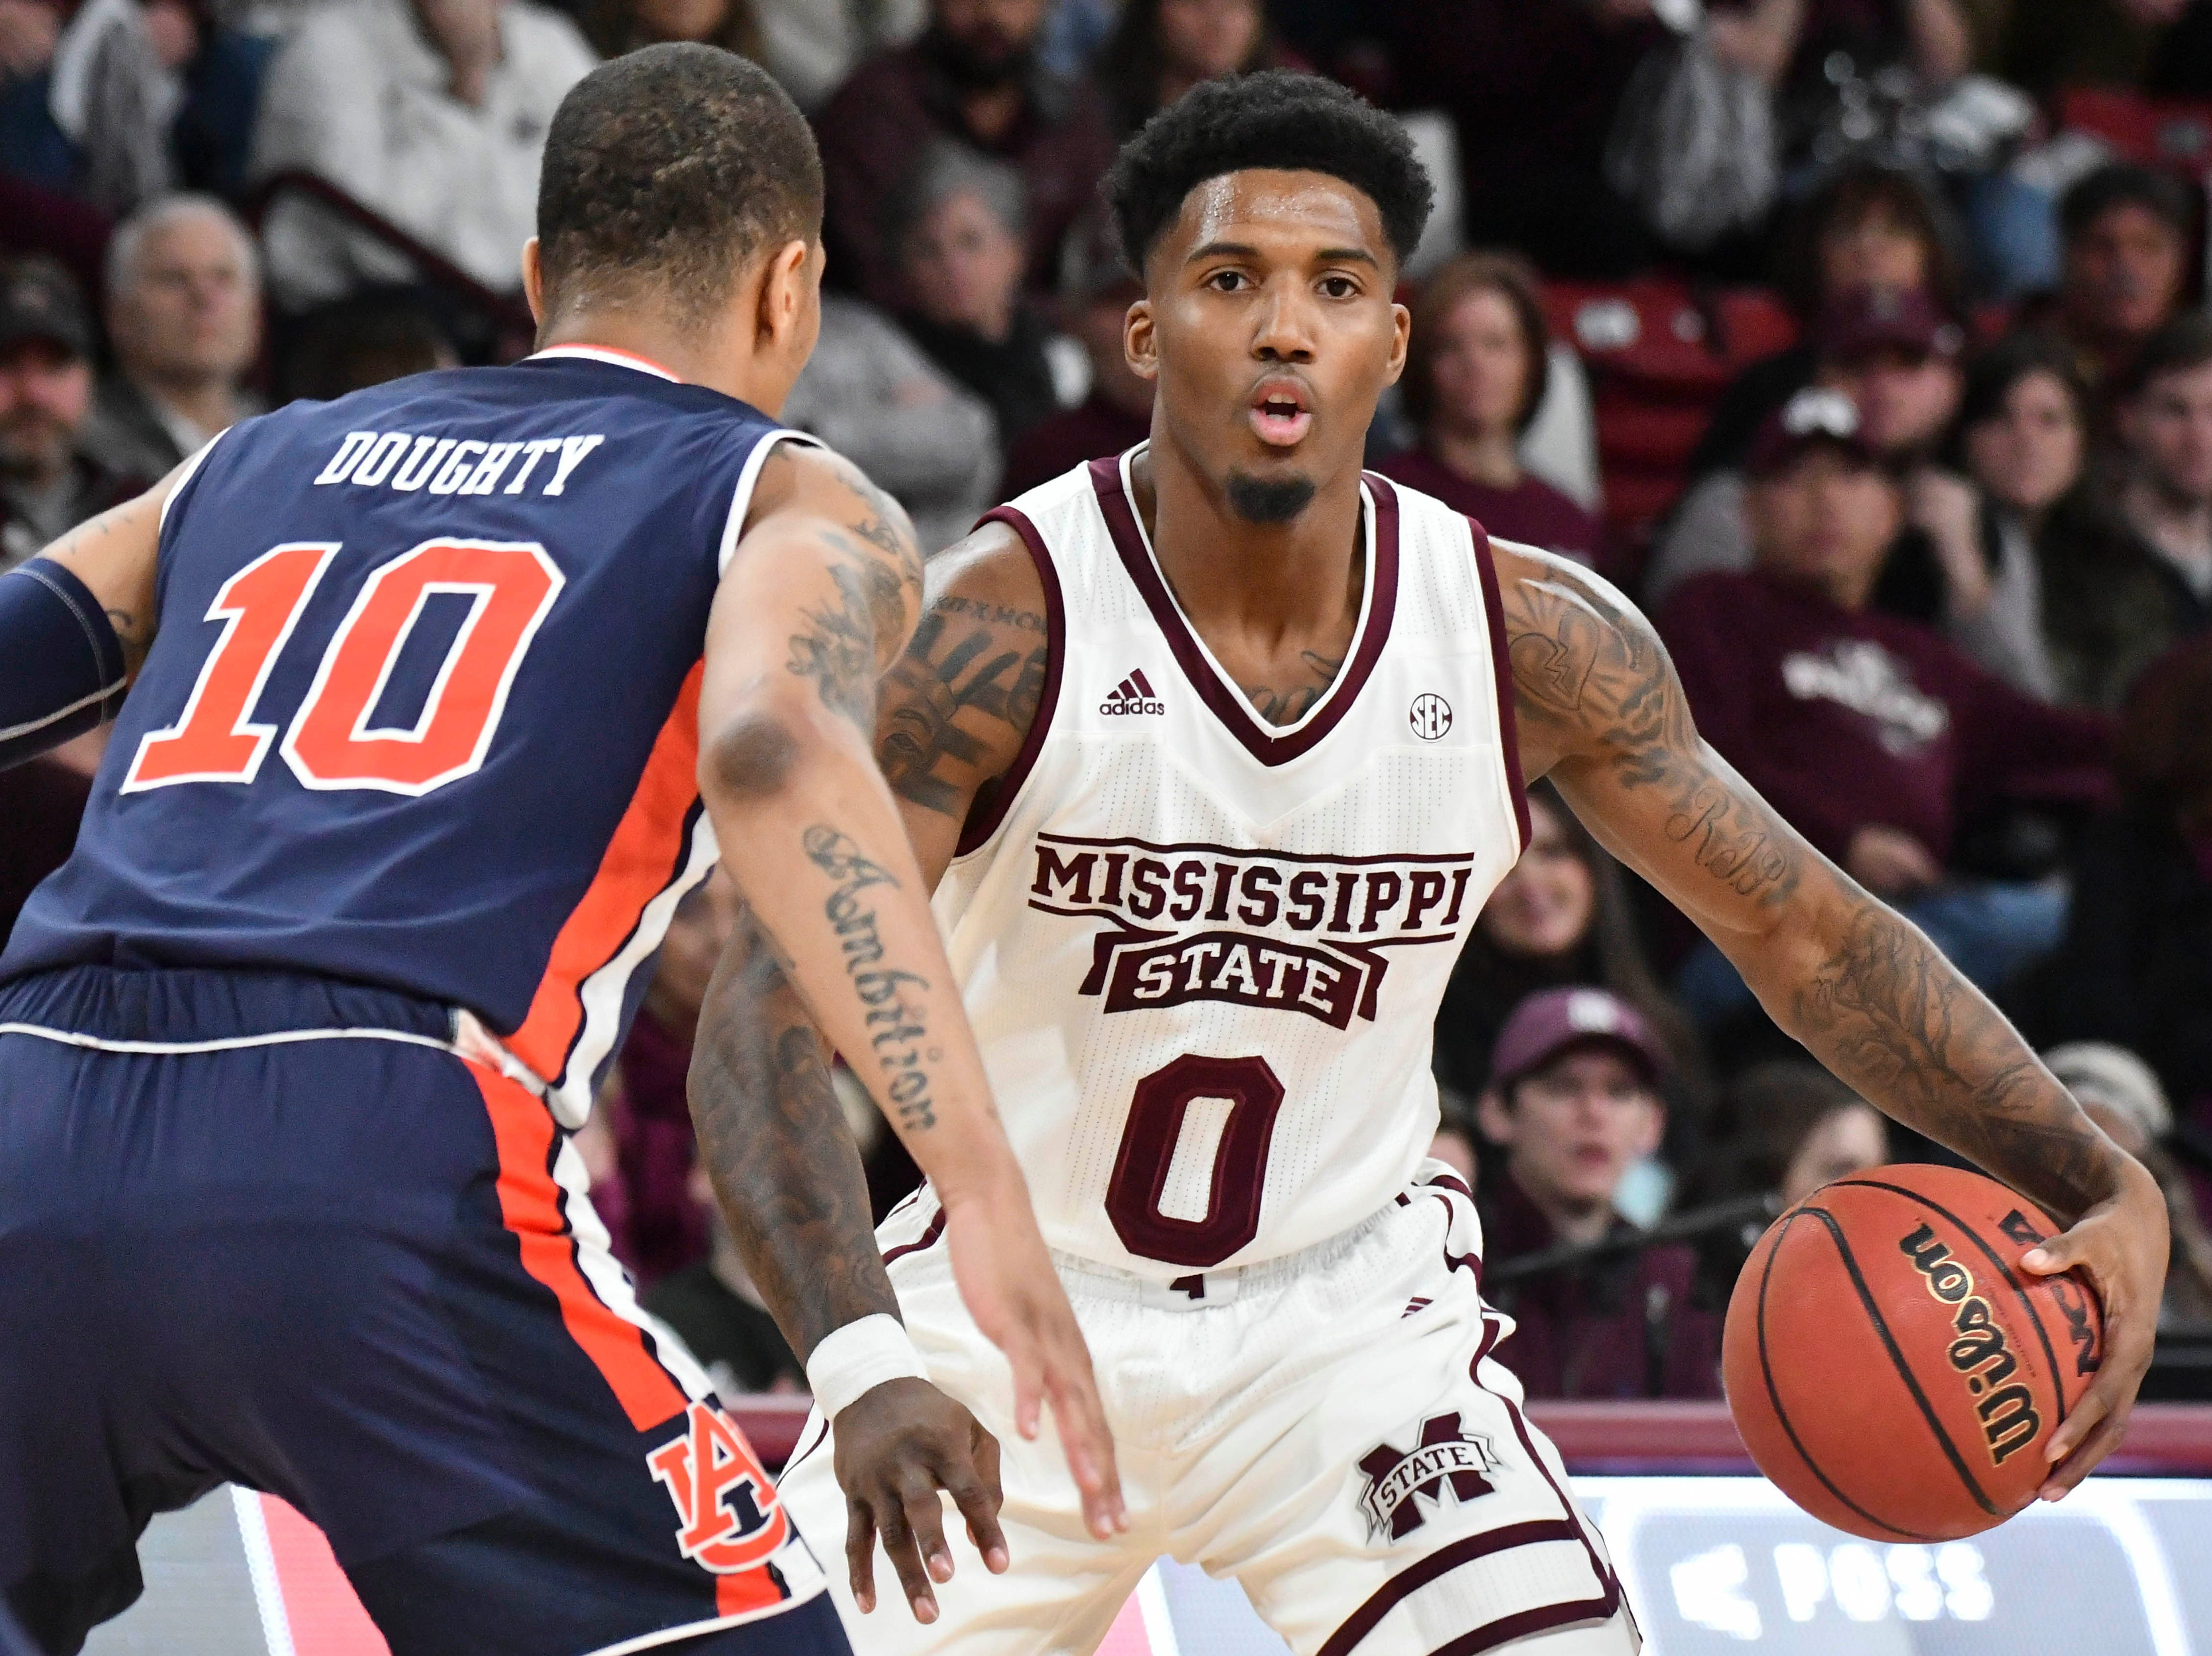 Jan 26, 2019; Starkville, MS, USA; Mississippi State Bulldogs guard Nick Weatherspoon (0) handles the ball against Auburn Tigers guard Samir Doughty (10) during the first half at Humphrey Coliseum. Mandatory Credit: Matt Bush-USA TODAY Sports